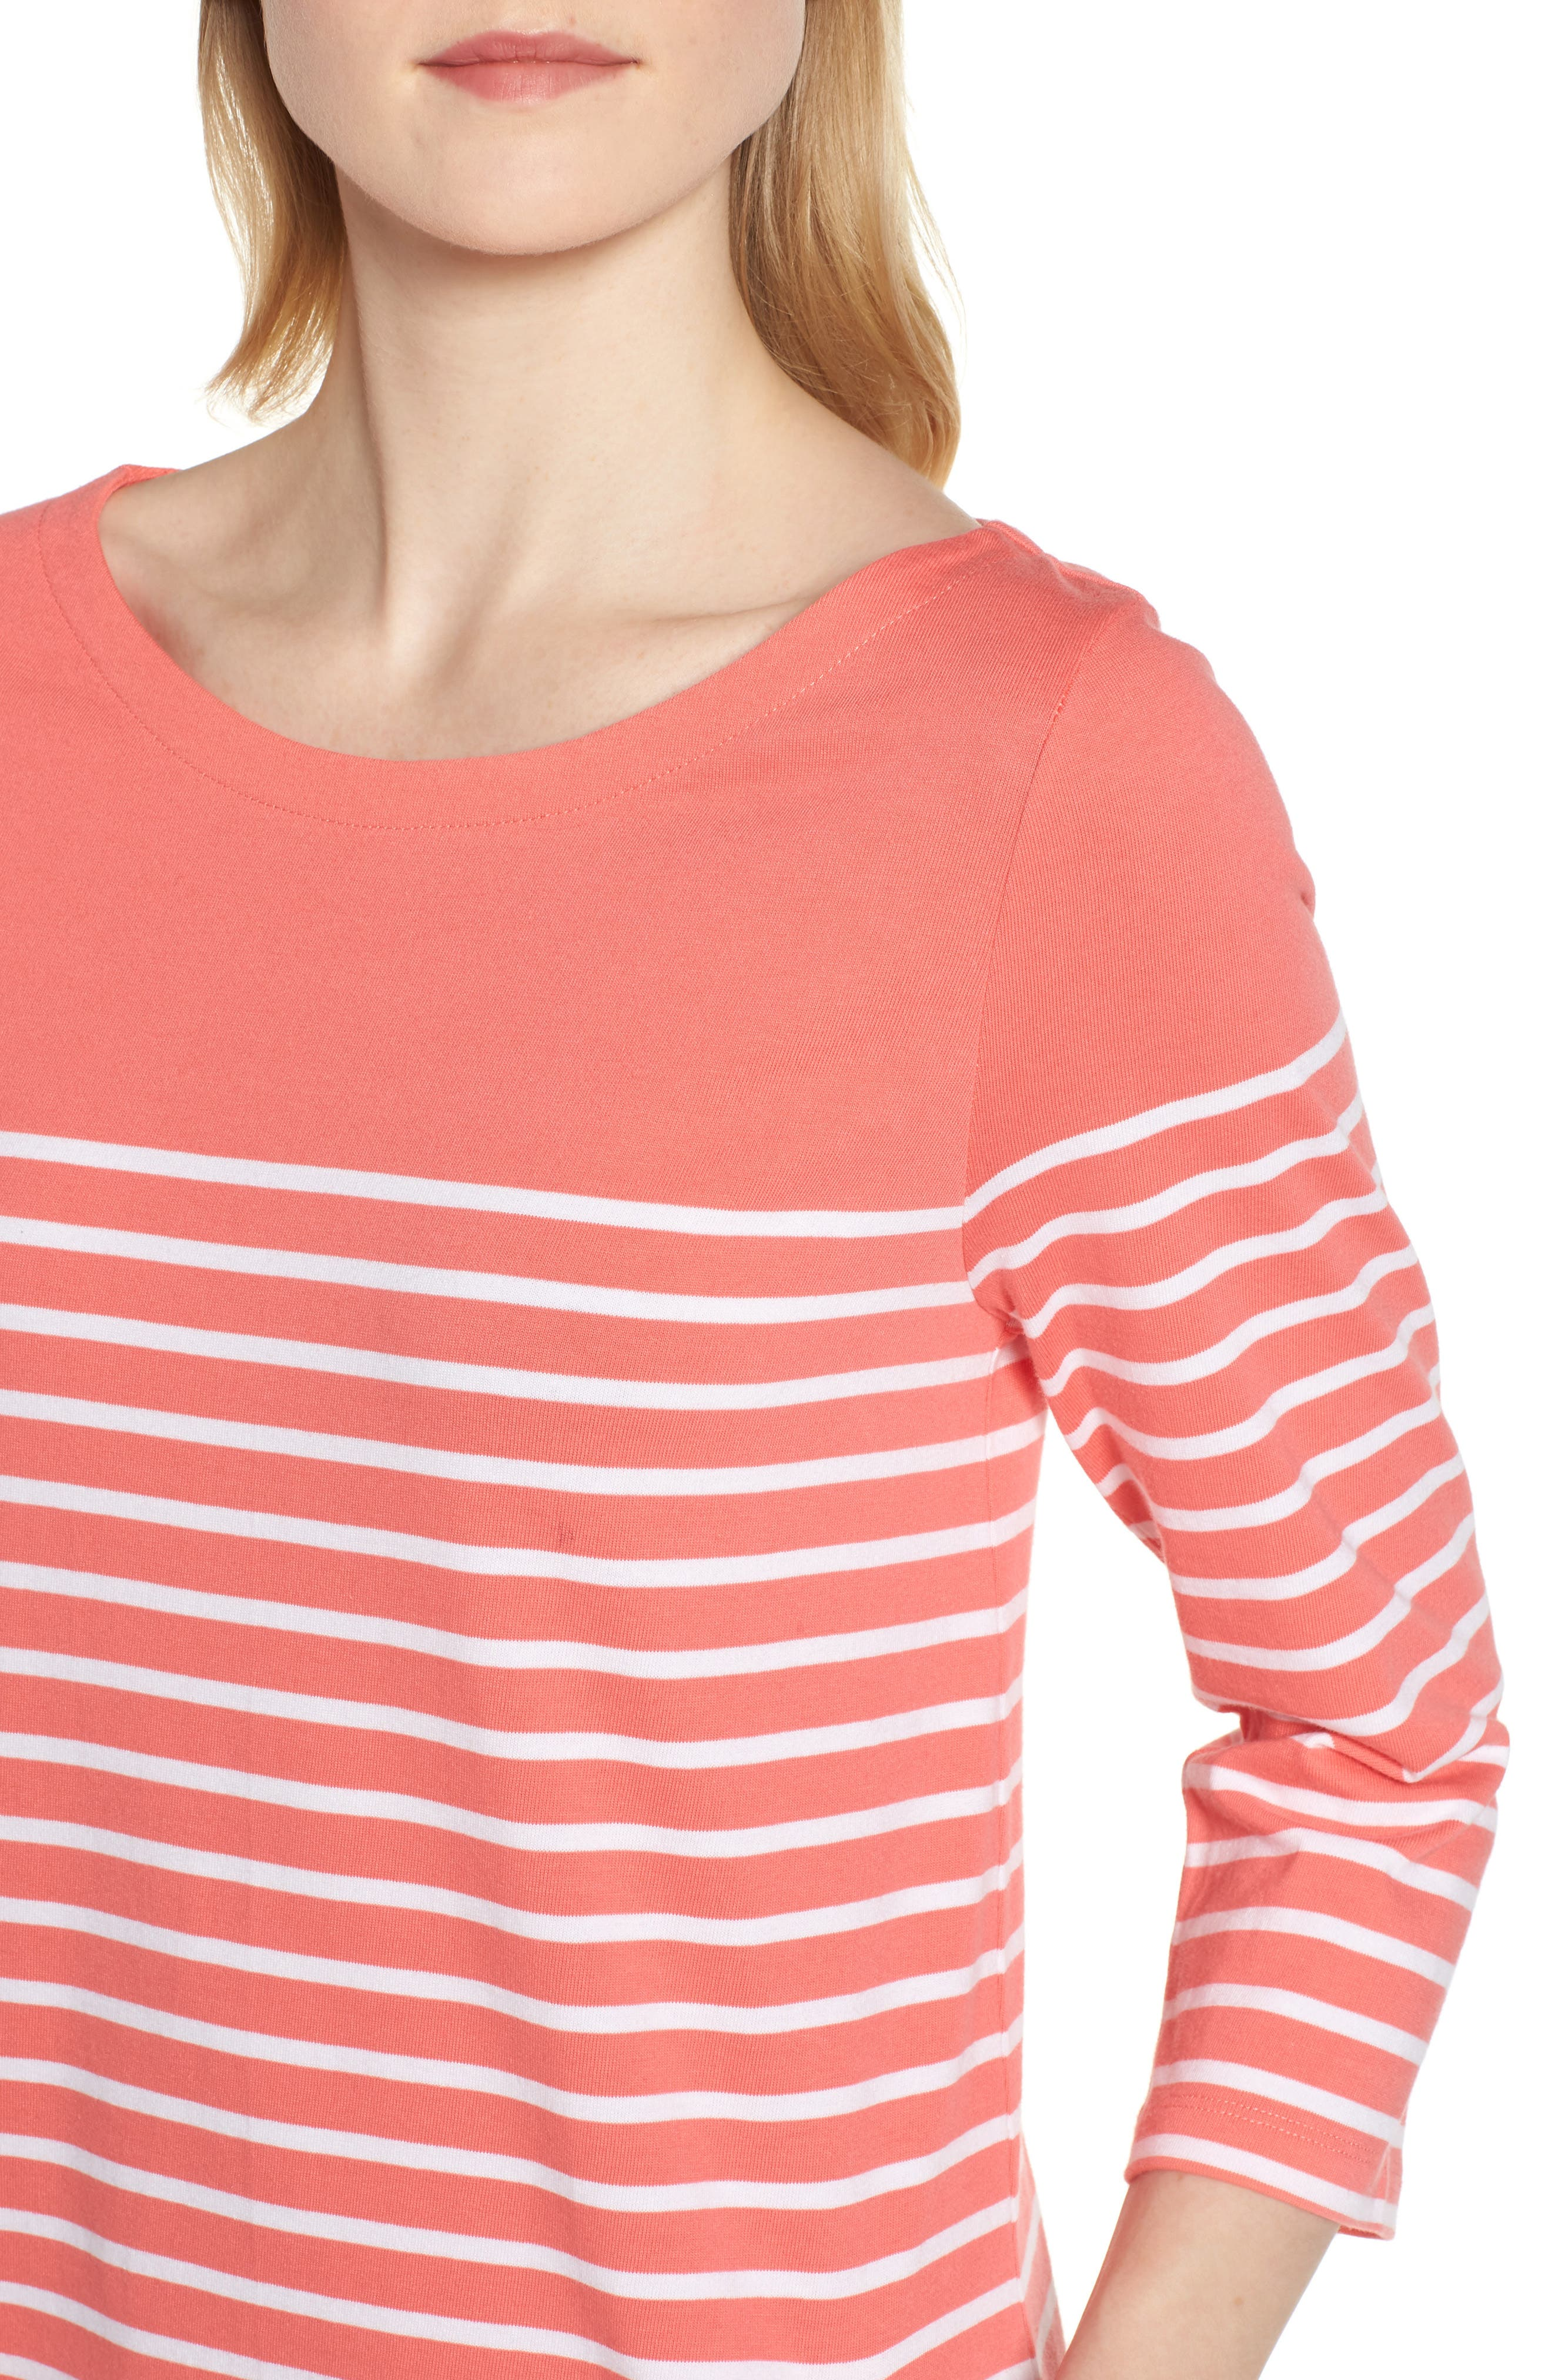 Stripe Cotton Knit Shift Dress,                             Alternate thumbnail 4, color,                             Coral- White Stripe